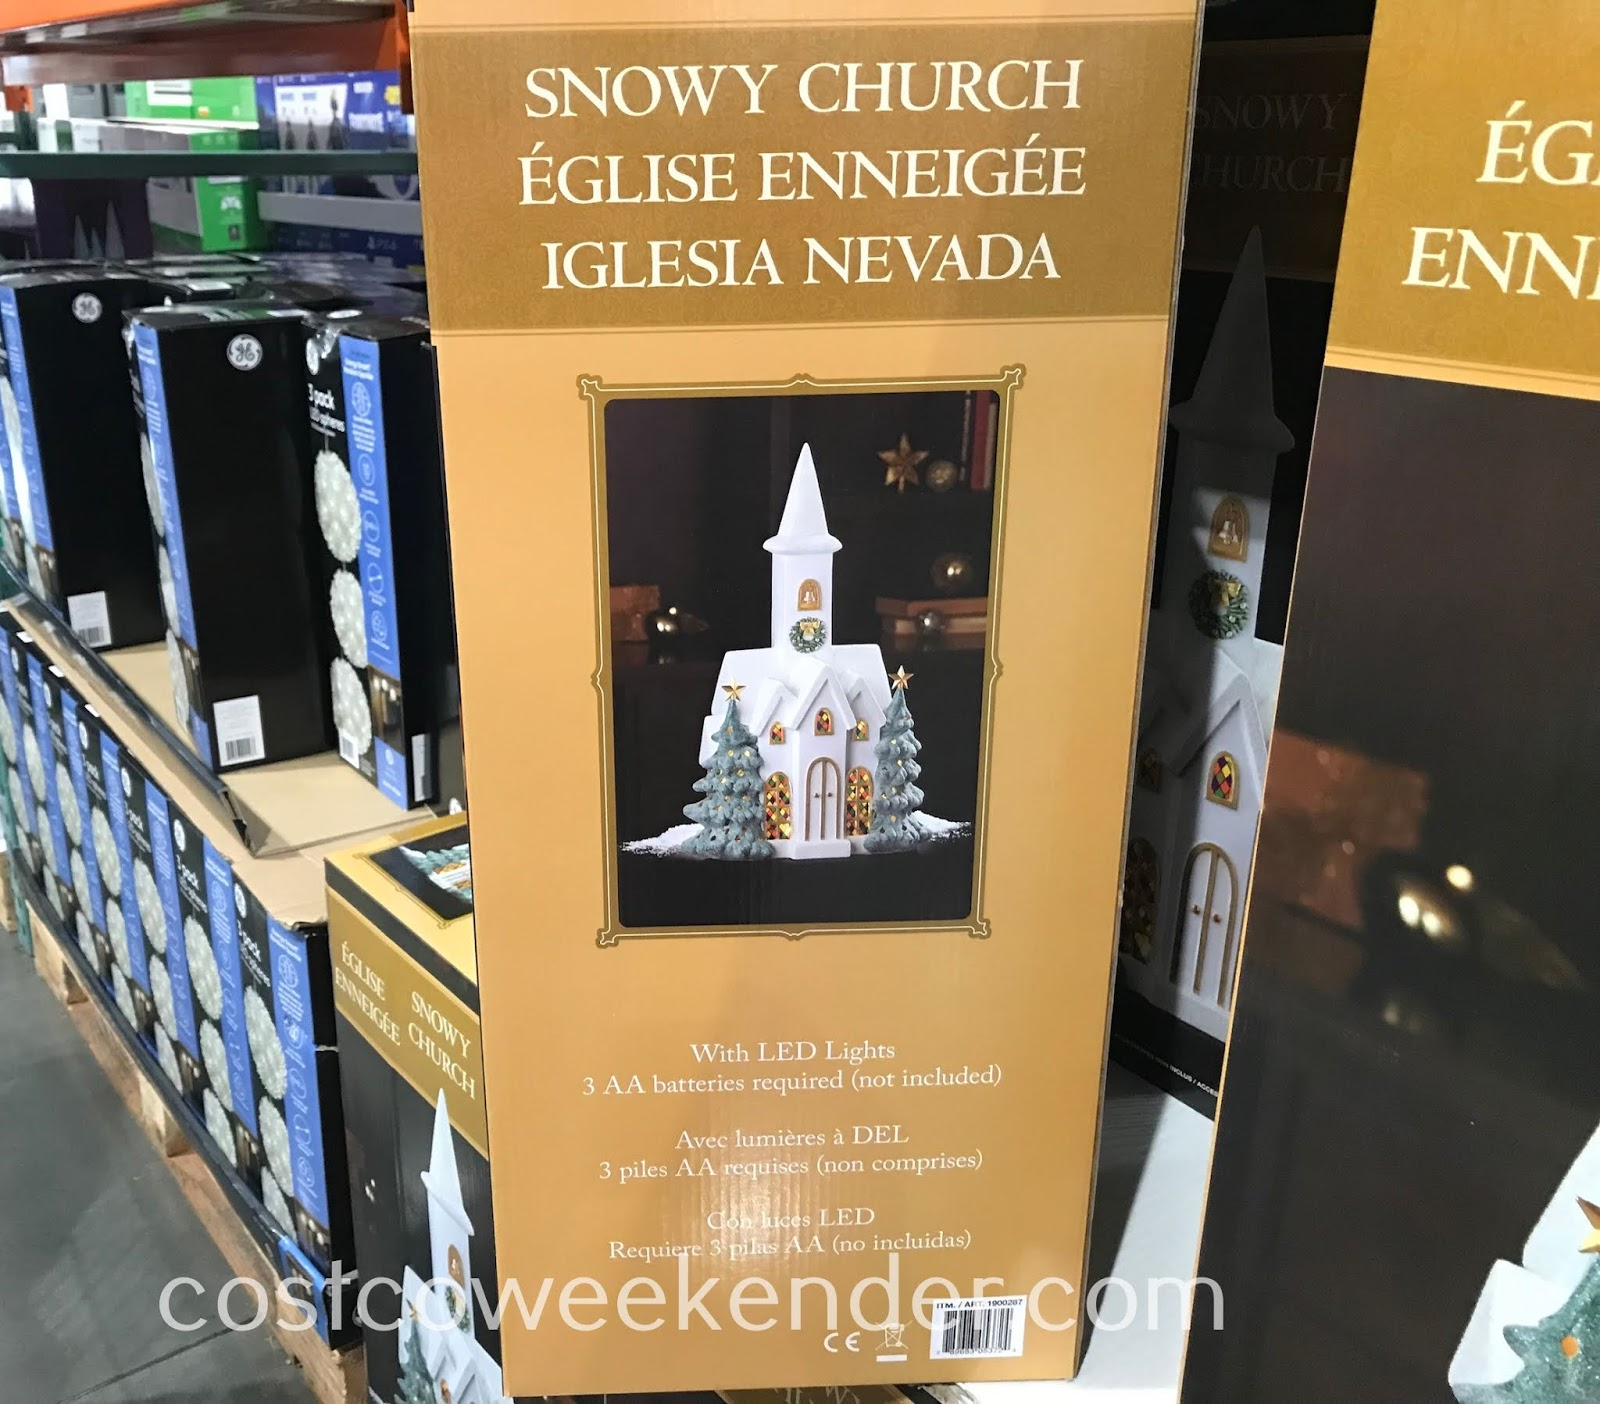 Costco 1900287 - Snowy Church with LED Lights: great for Christmas